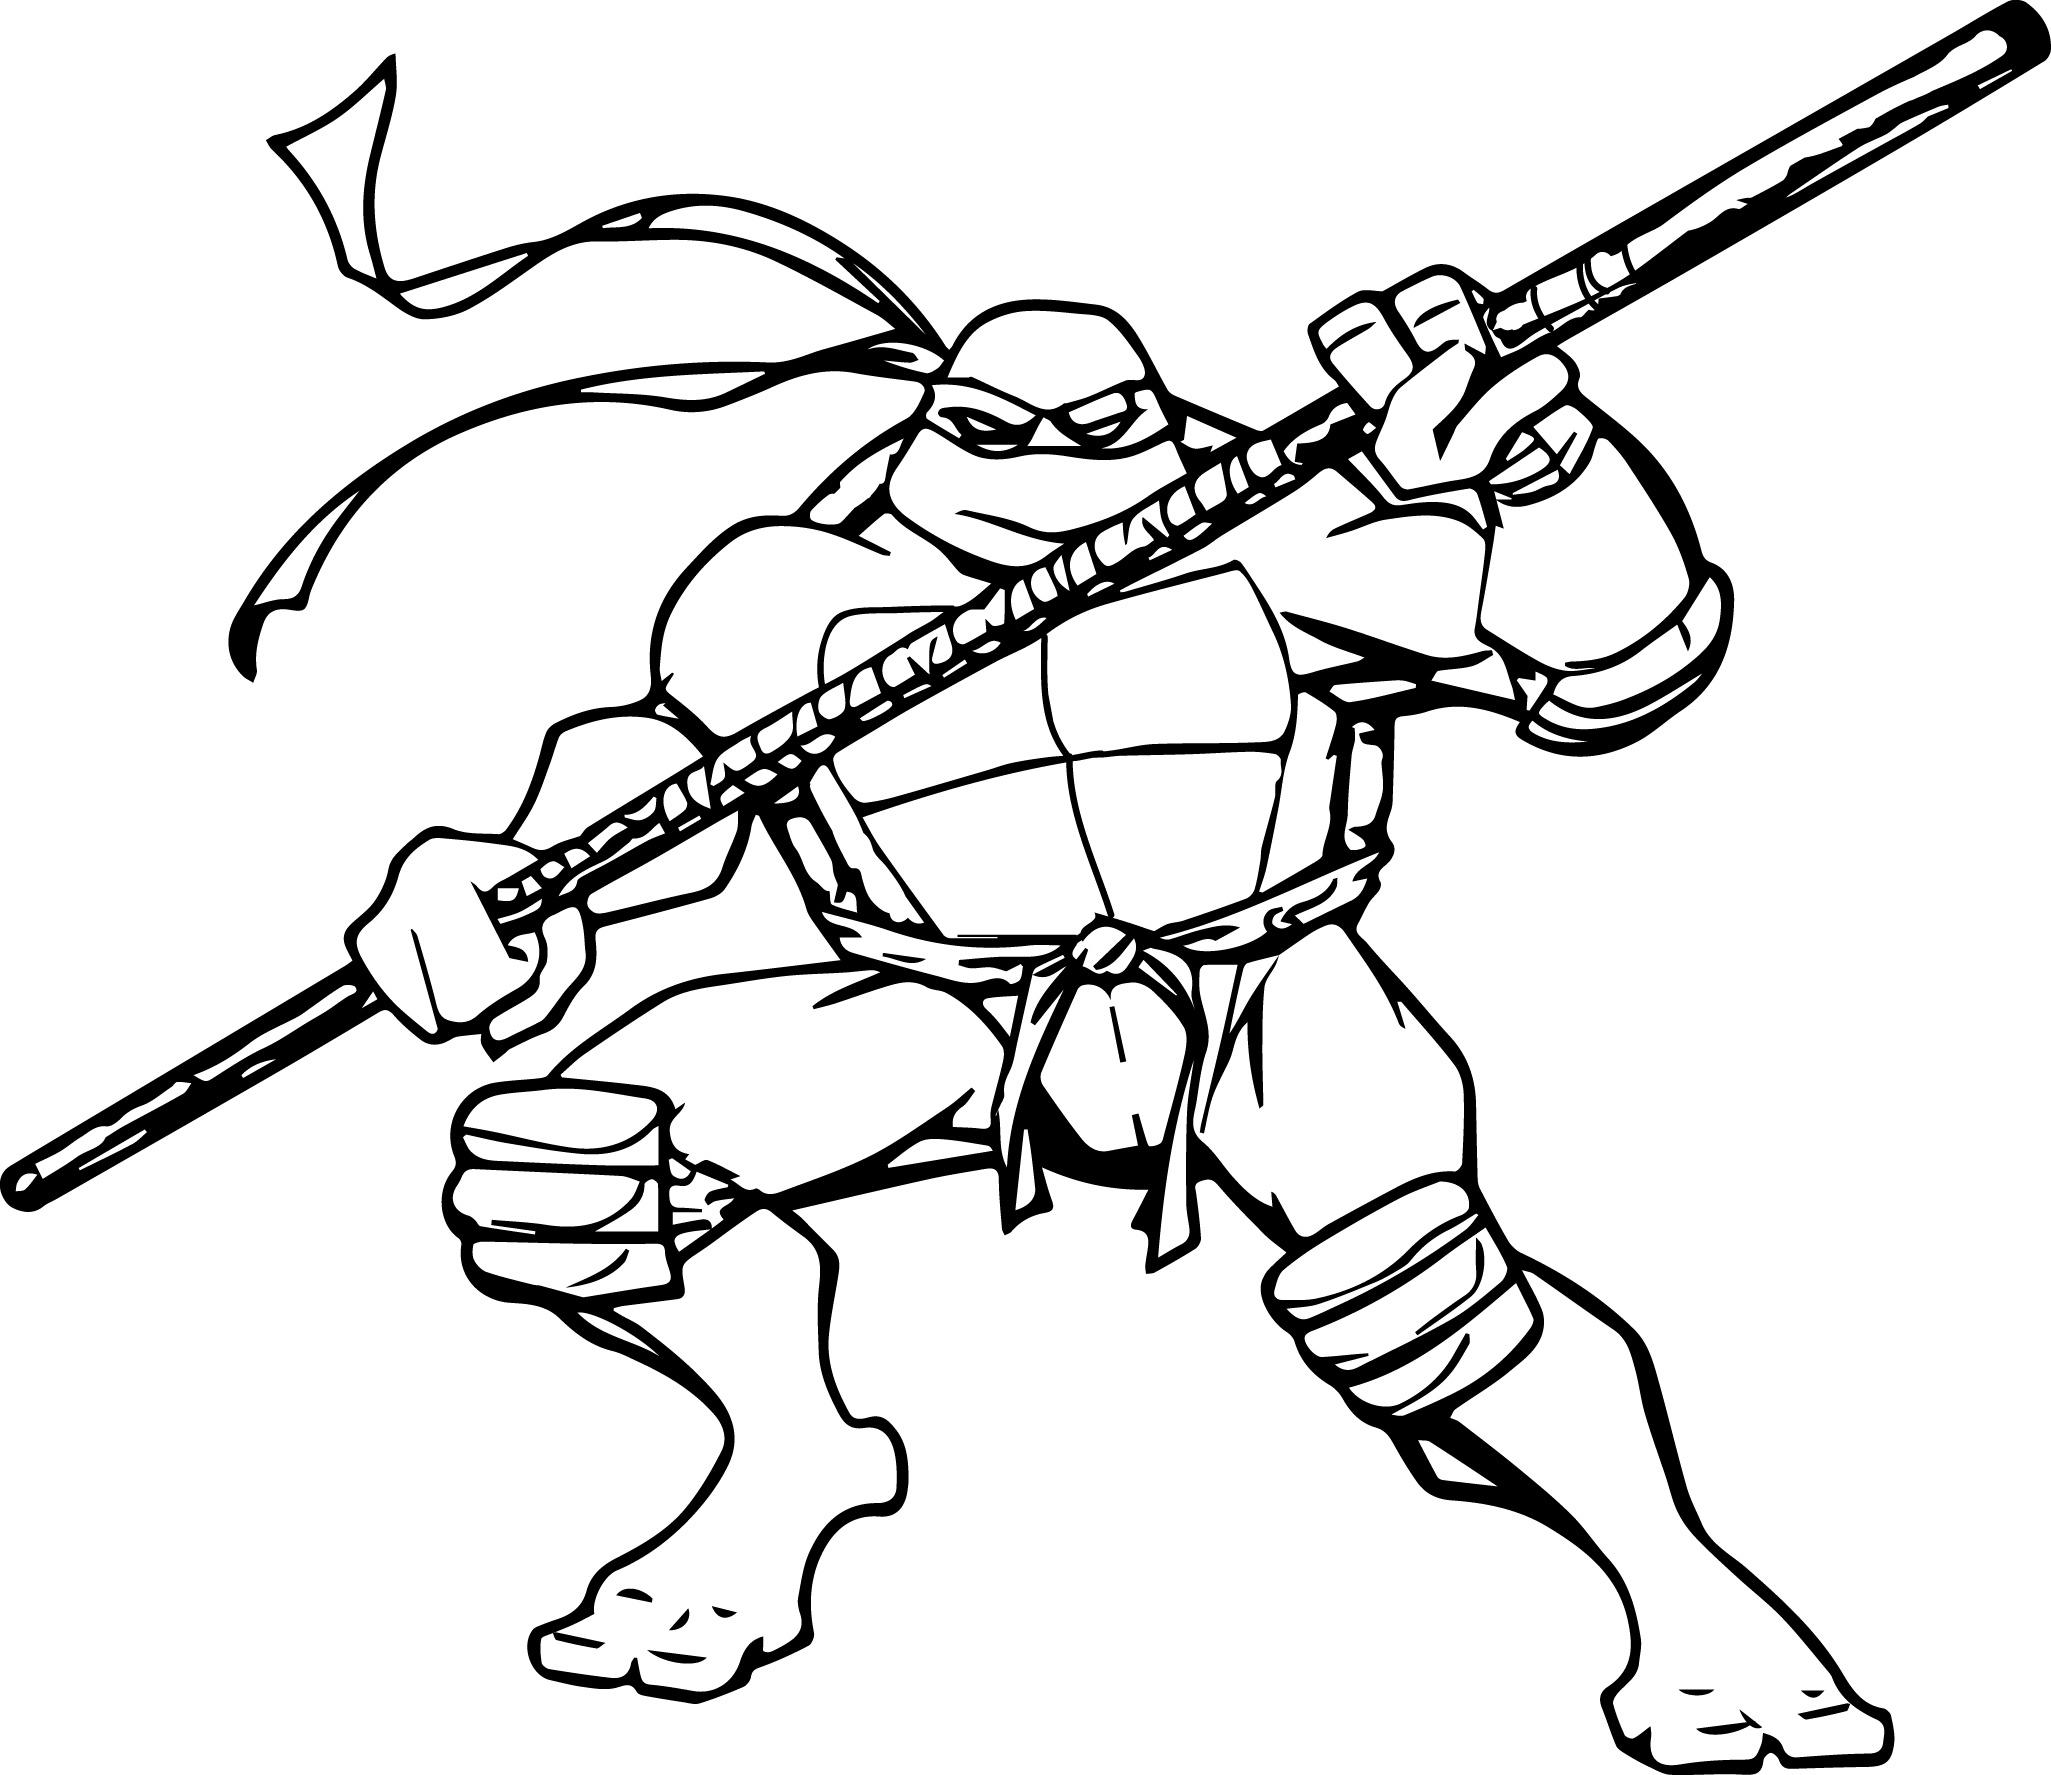 2051x1775 Reliable Ninja Turtles Coloring Pages To Print